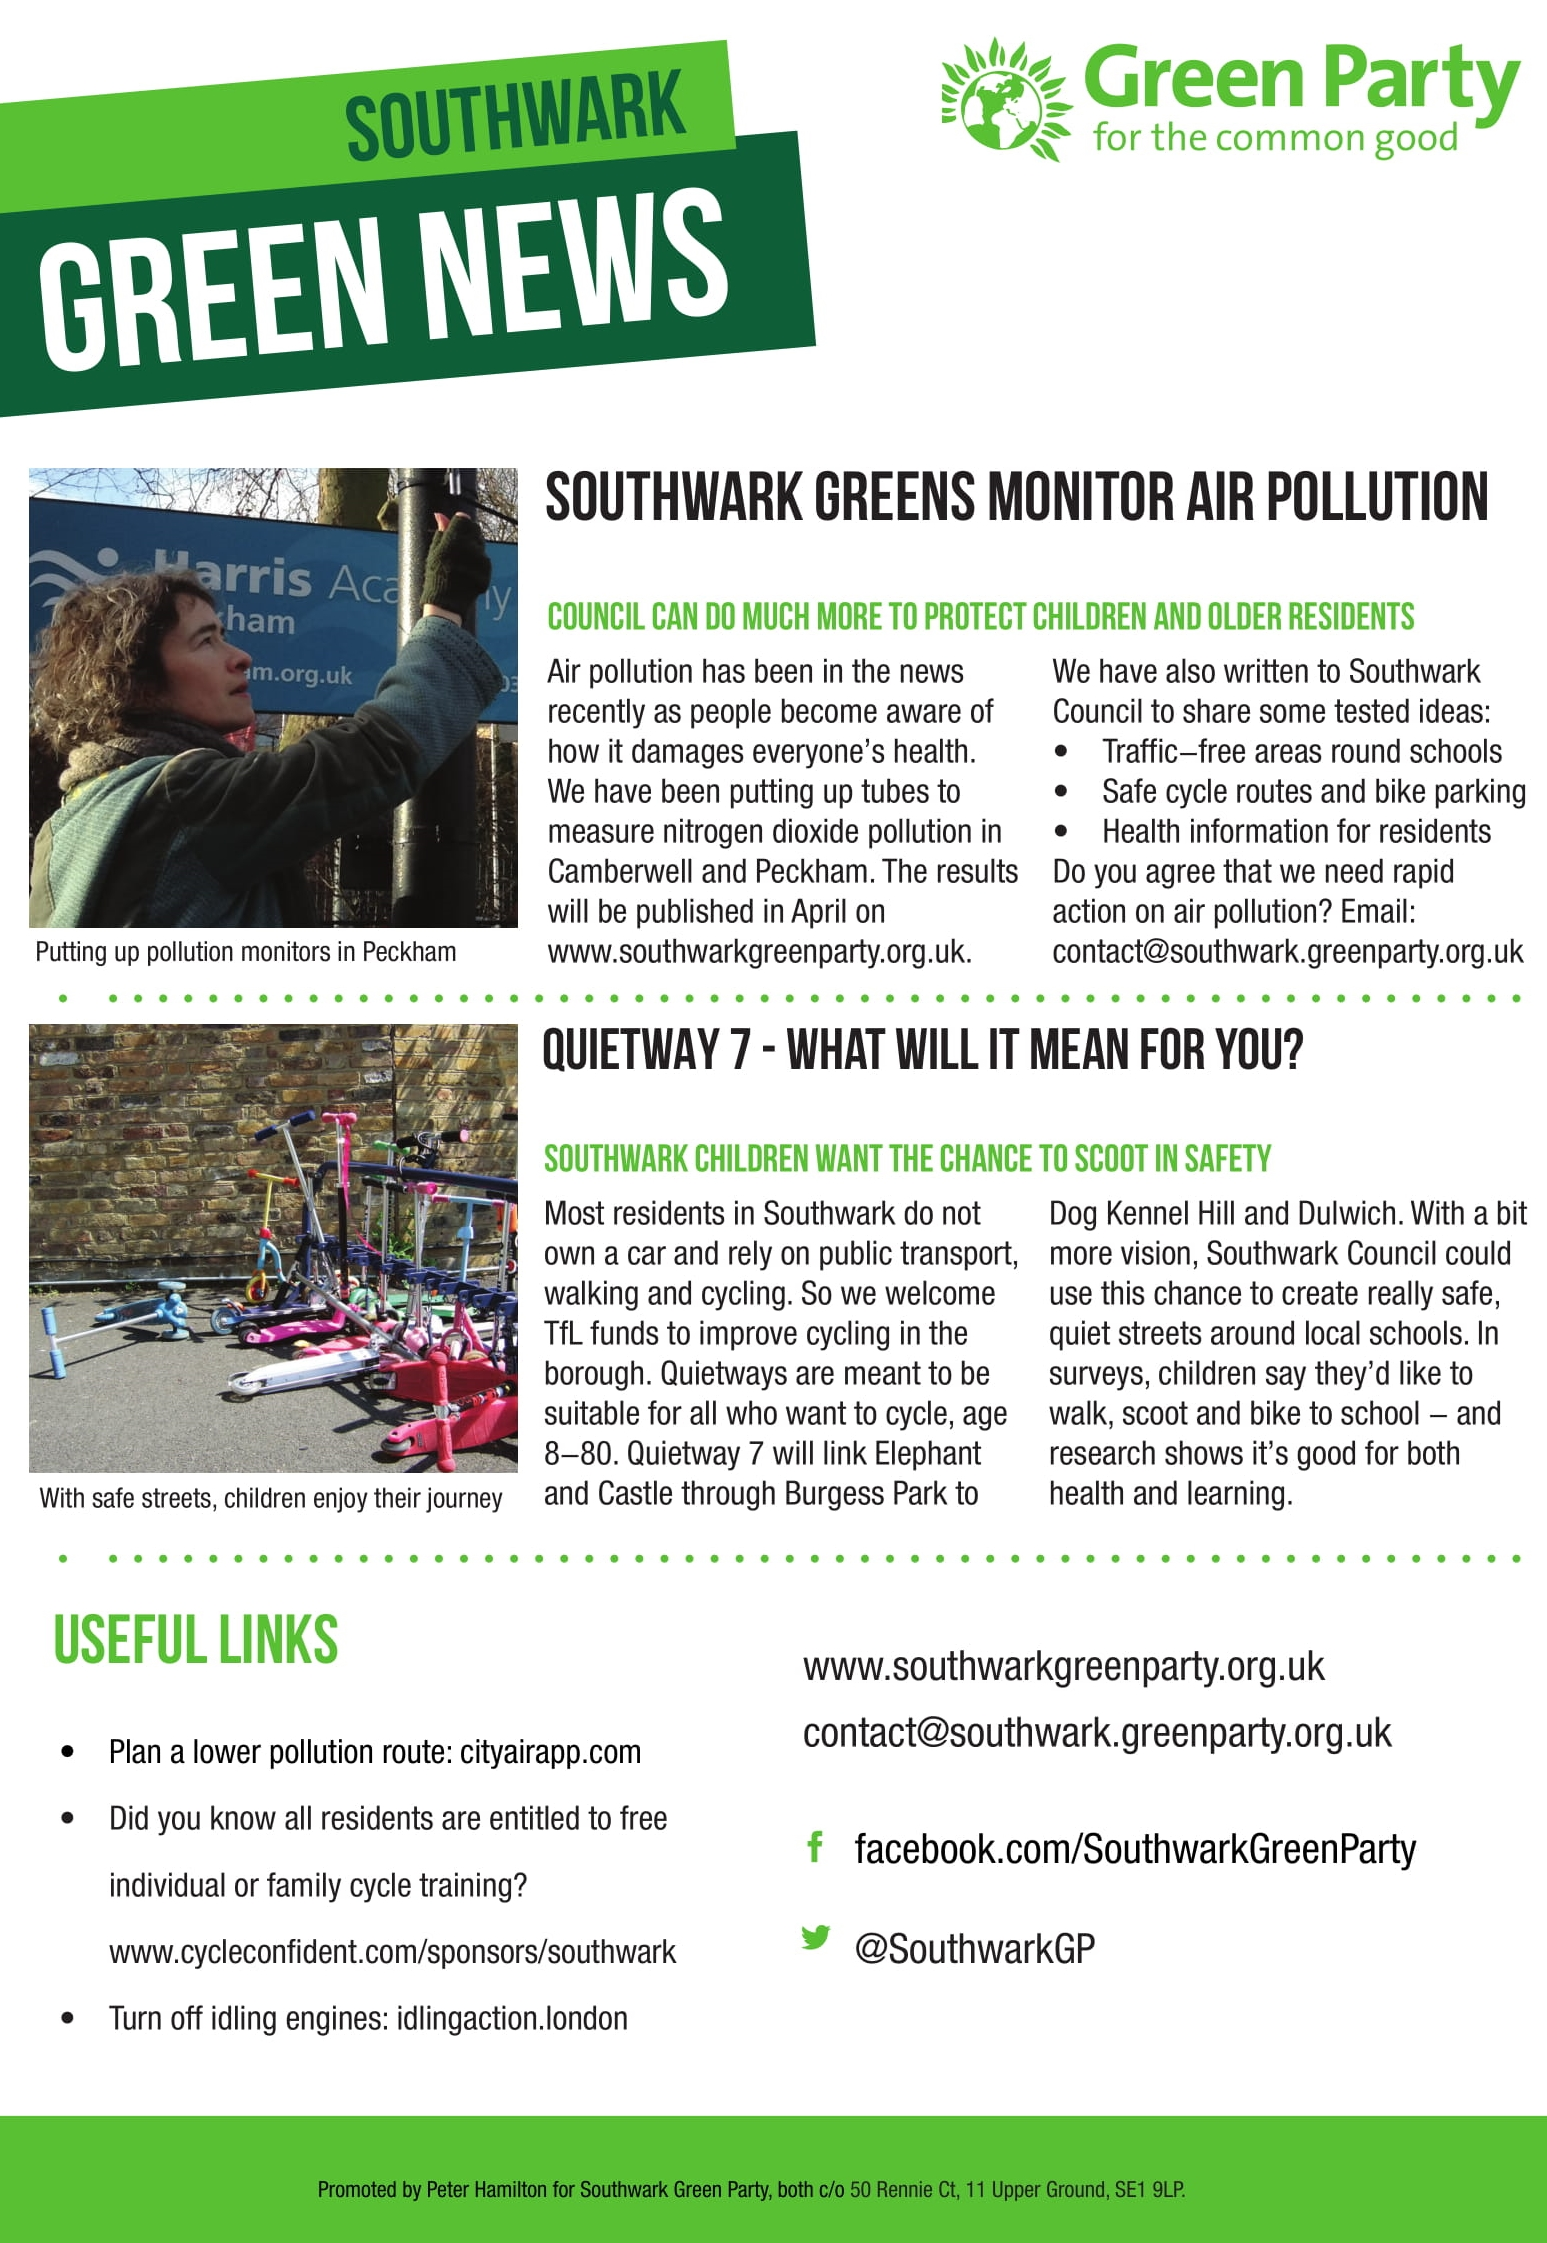 01.a_Southwark_Green_News_March_2017-1.jpg